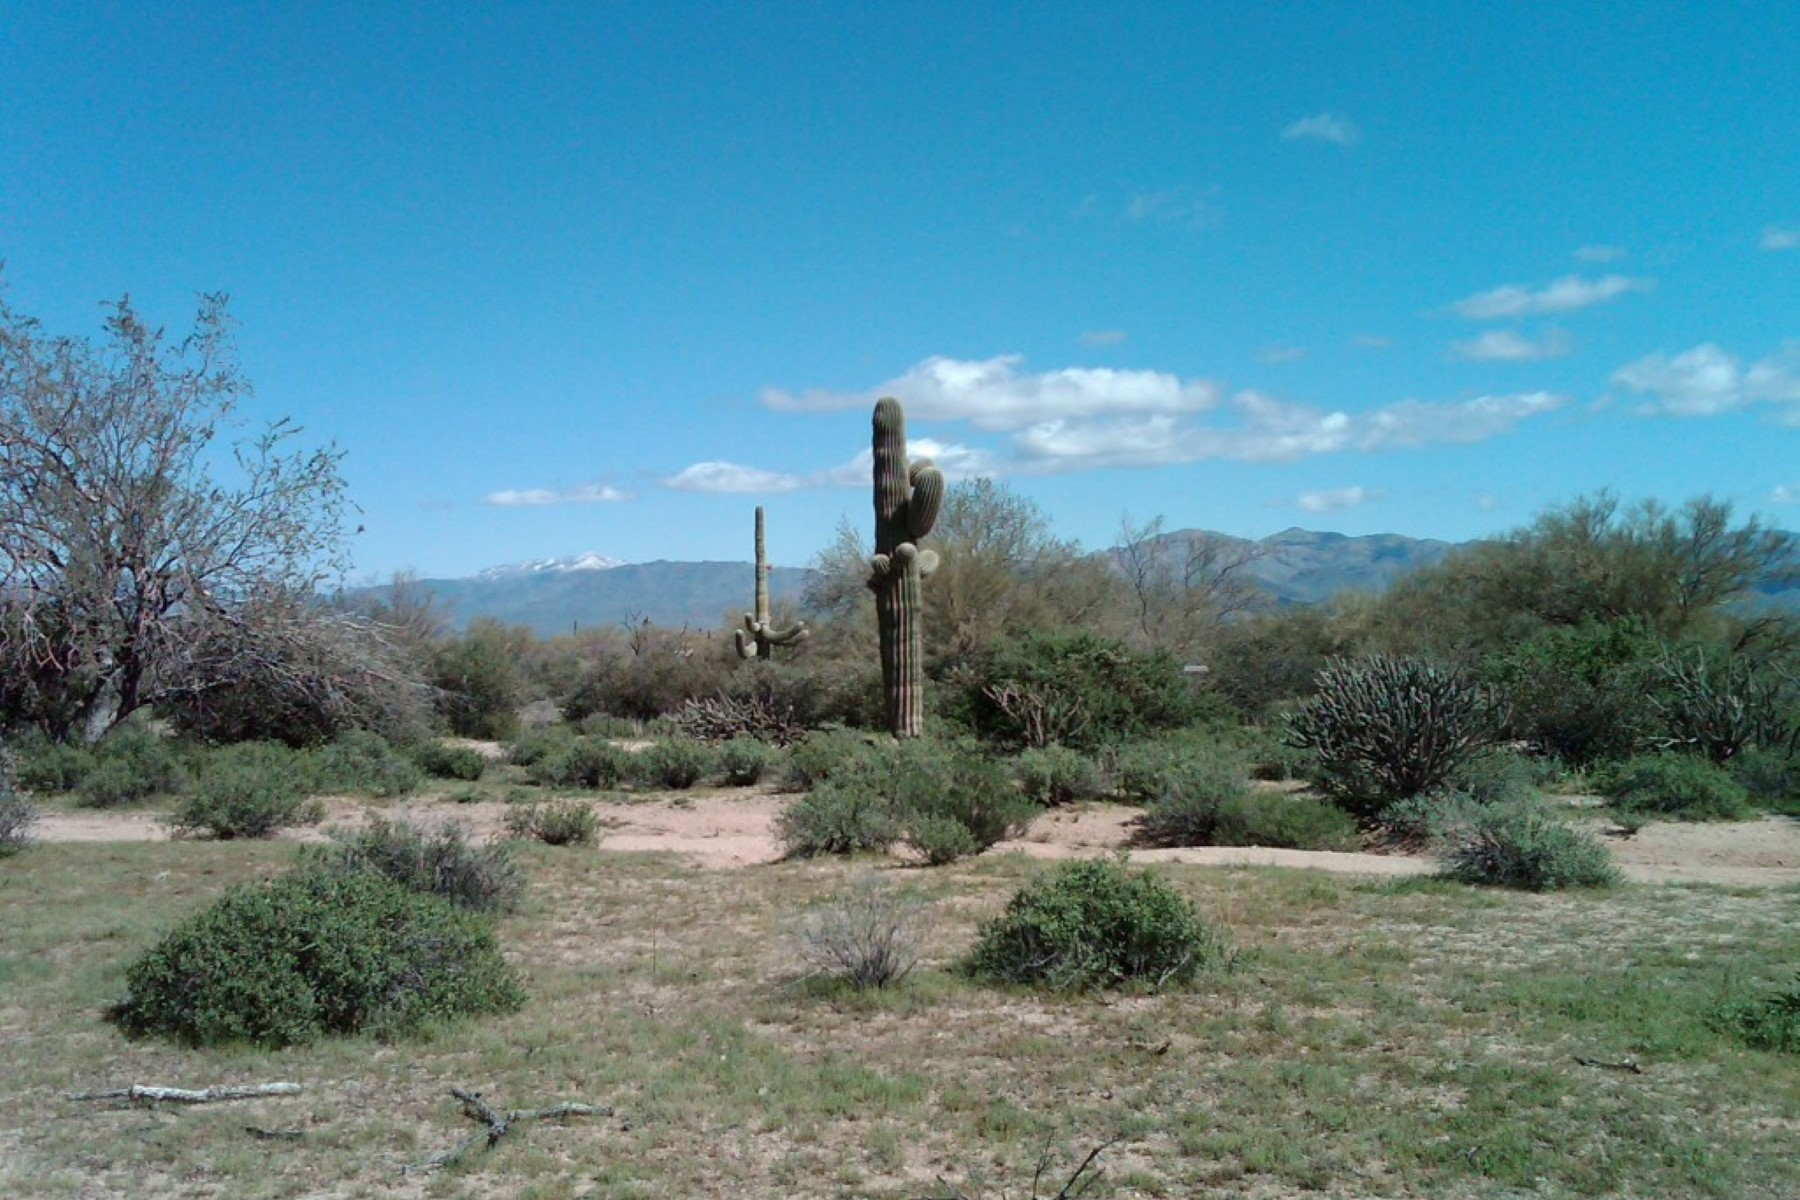 Land for Sale at Very tranquil almost 2.5 Acre lot 32XXX N 162ND ST, Scottsdale, Arizona, 85262 United States